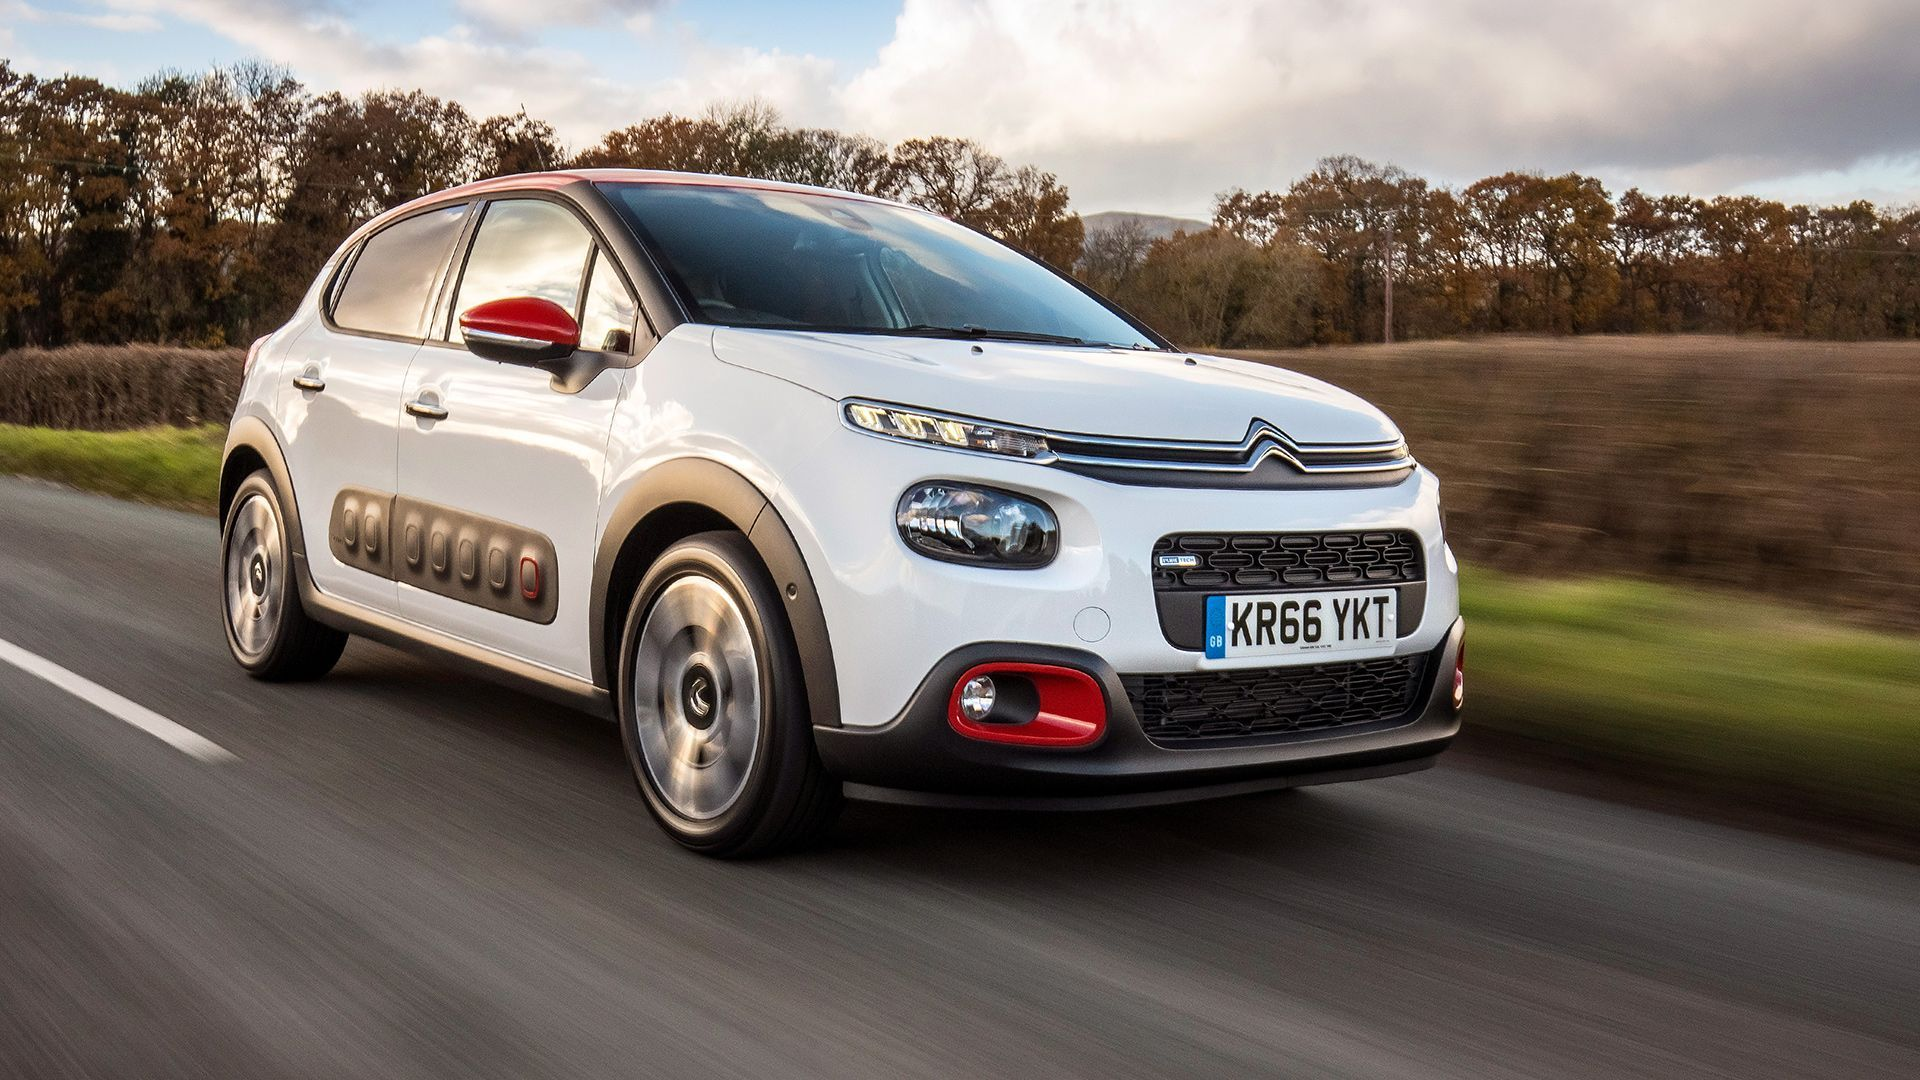 Citroen C3 Cool image